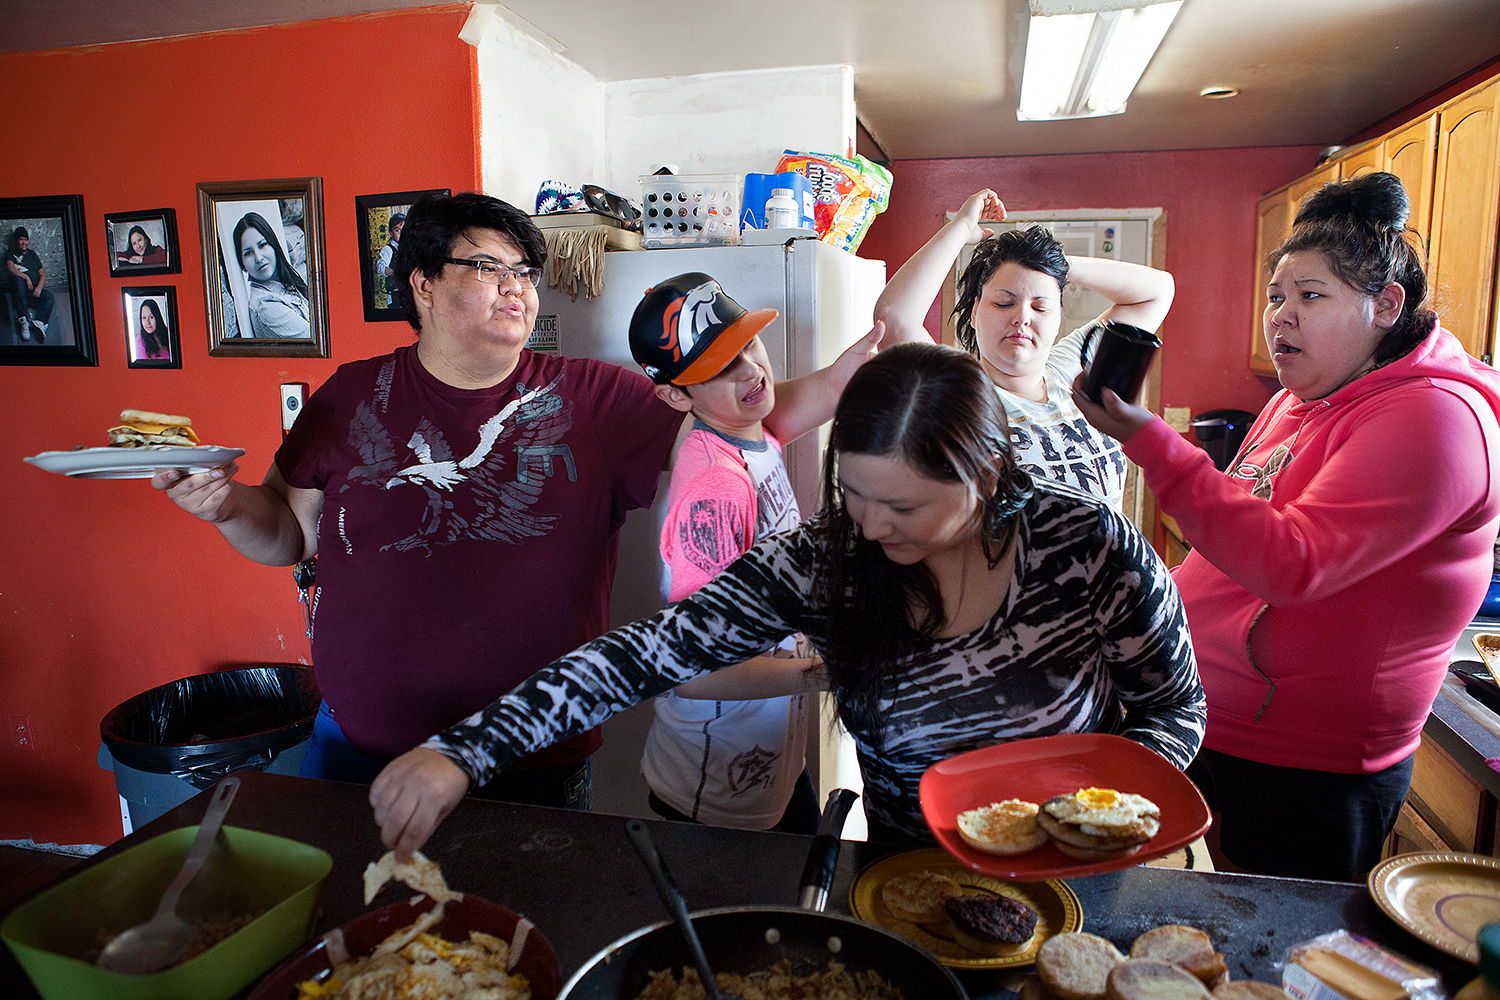 Dakota and his extended family talking and eating brunch in their kitchen.